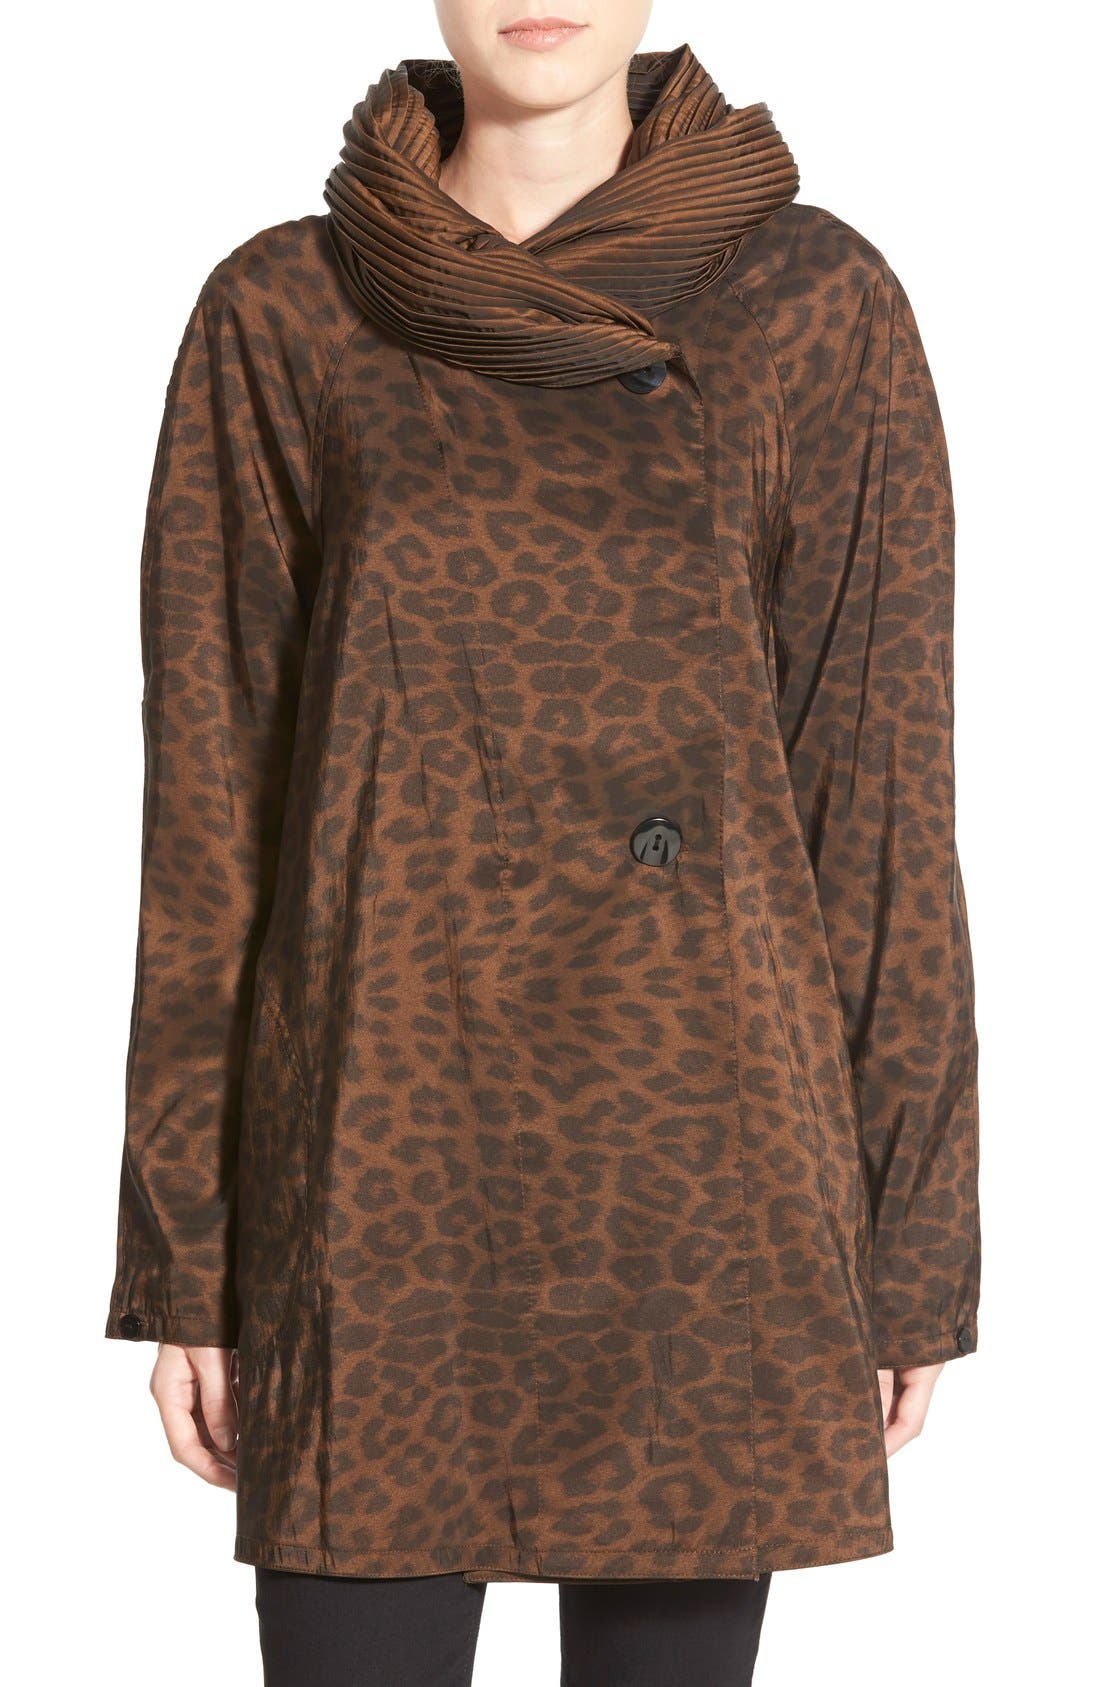 'Mini Donatella Leopard' Reversible Pleat Hood Packable Travel Coat,                             Alternate thumbnail 11, color,                             202